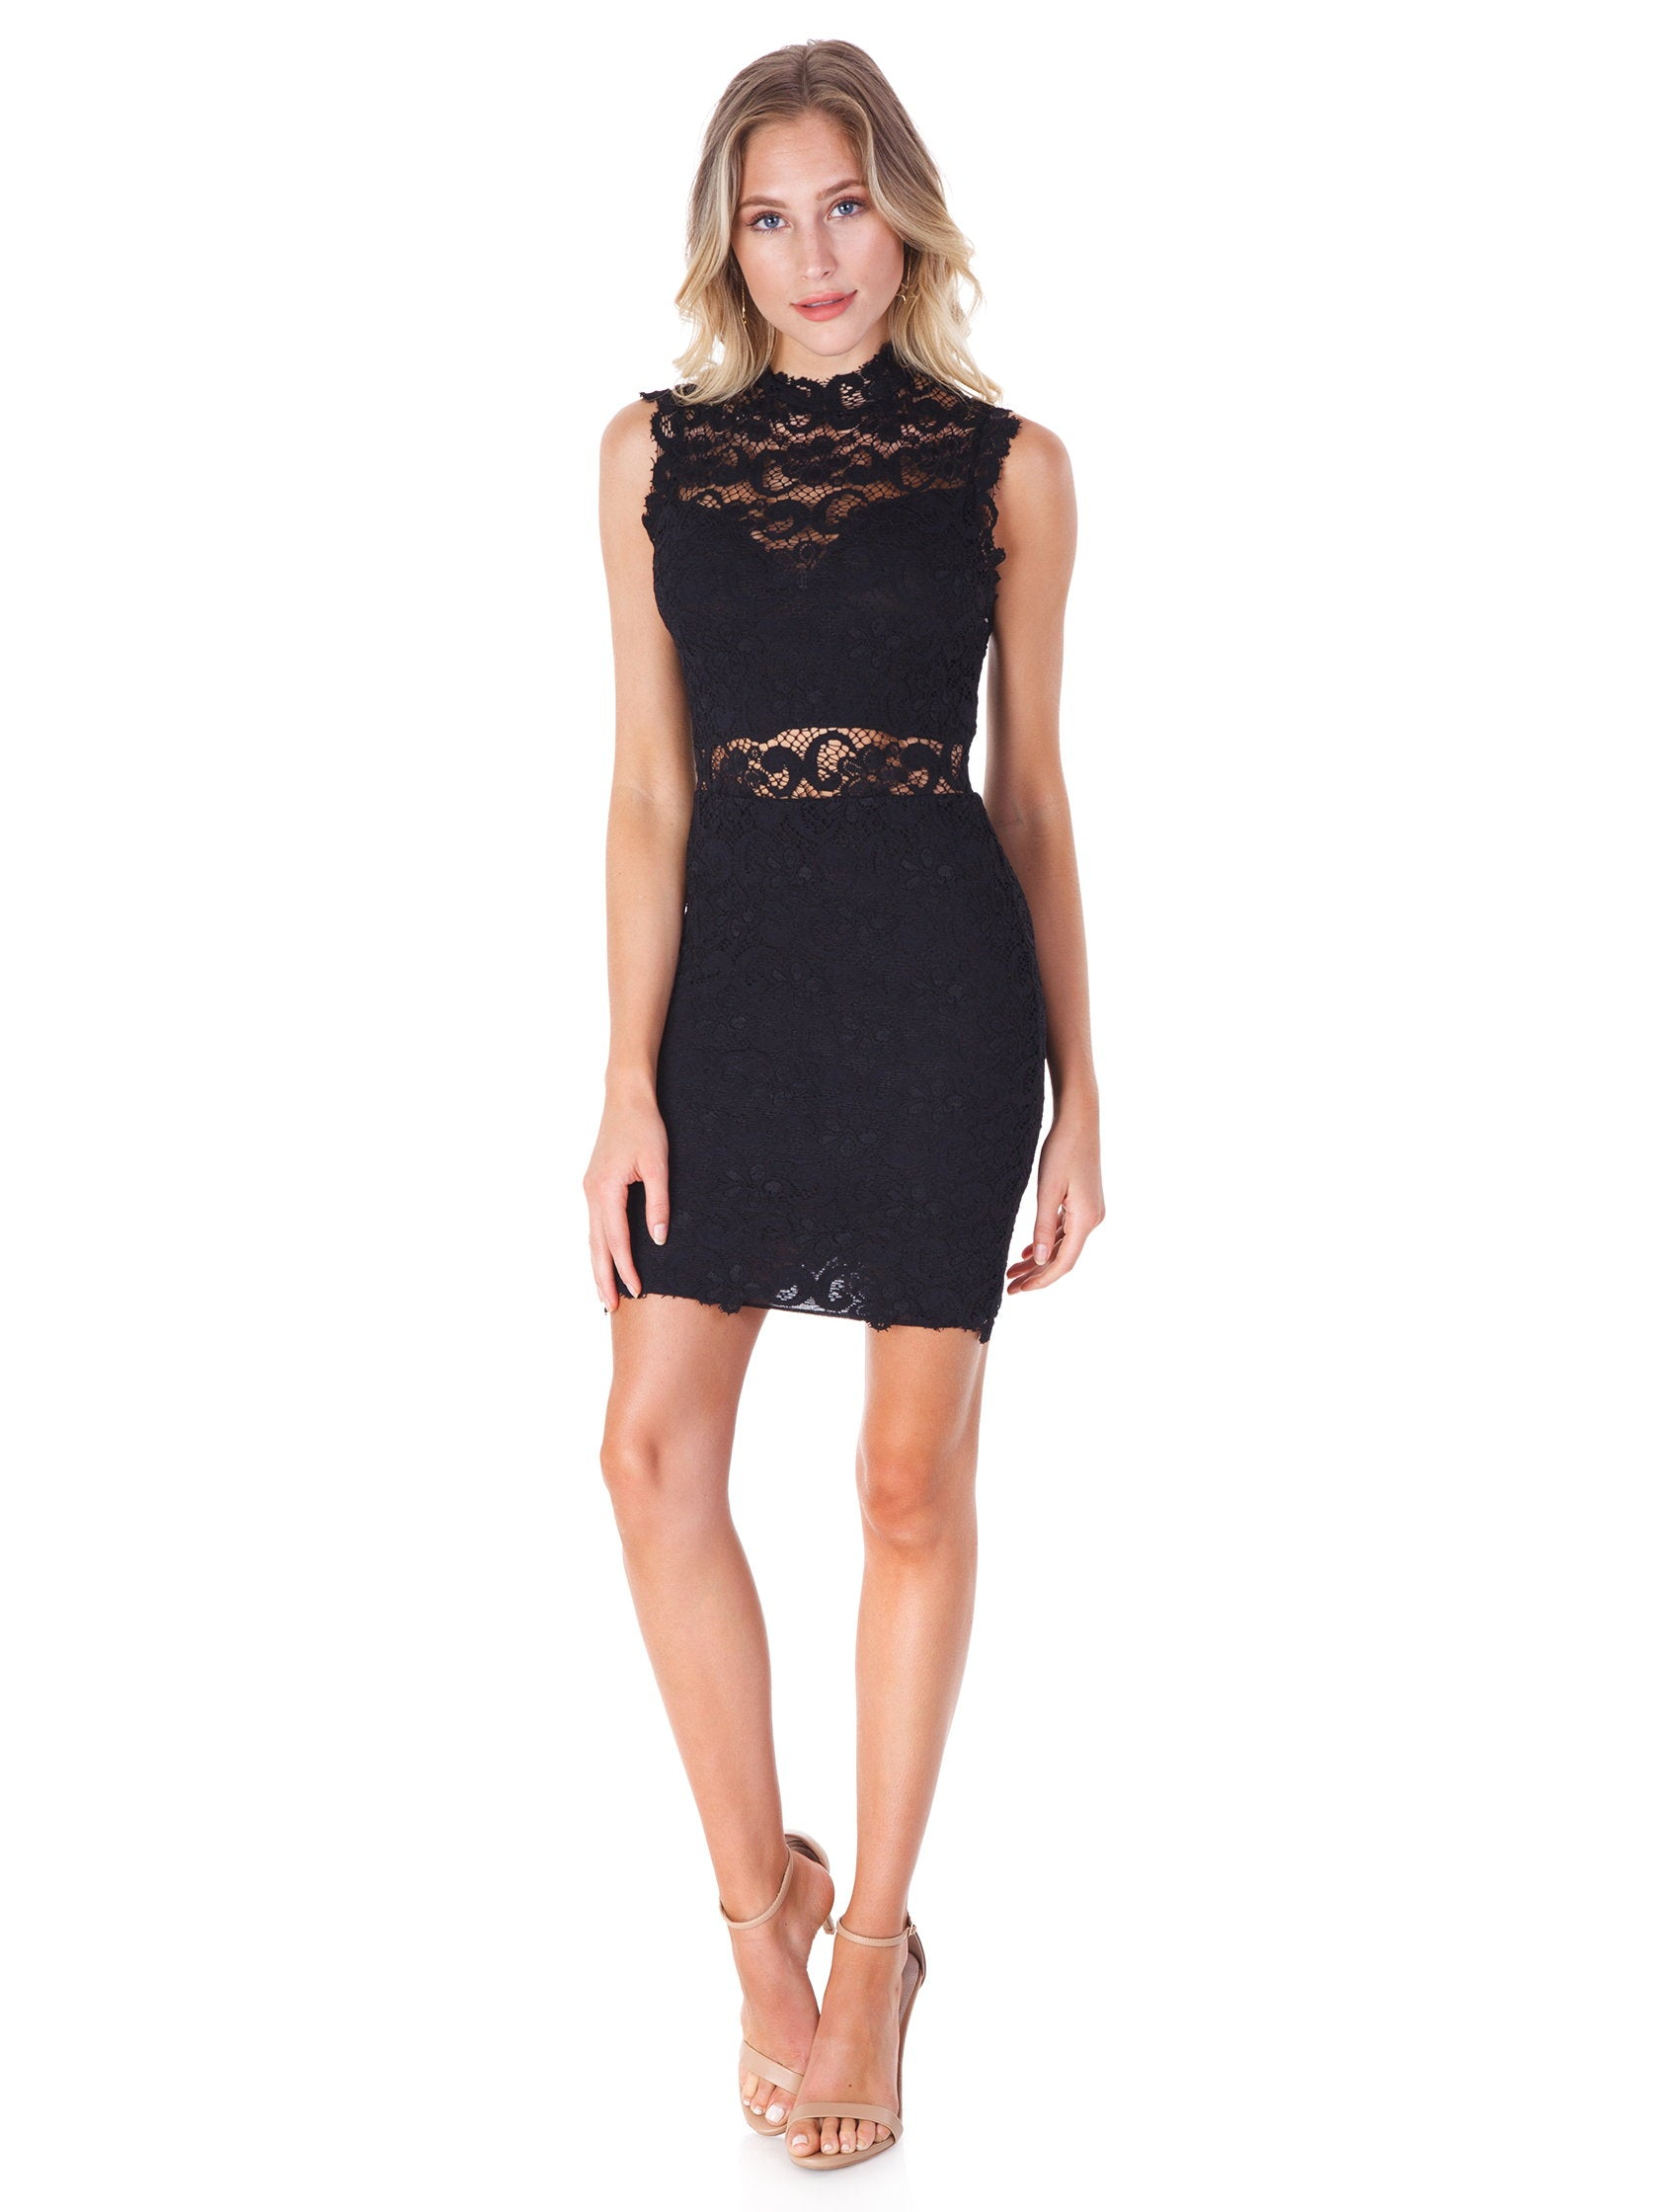 Girl outfit in a dress rental from Nightcap Clothing called Dixie Lace Cutout Mini Dress